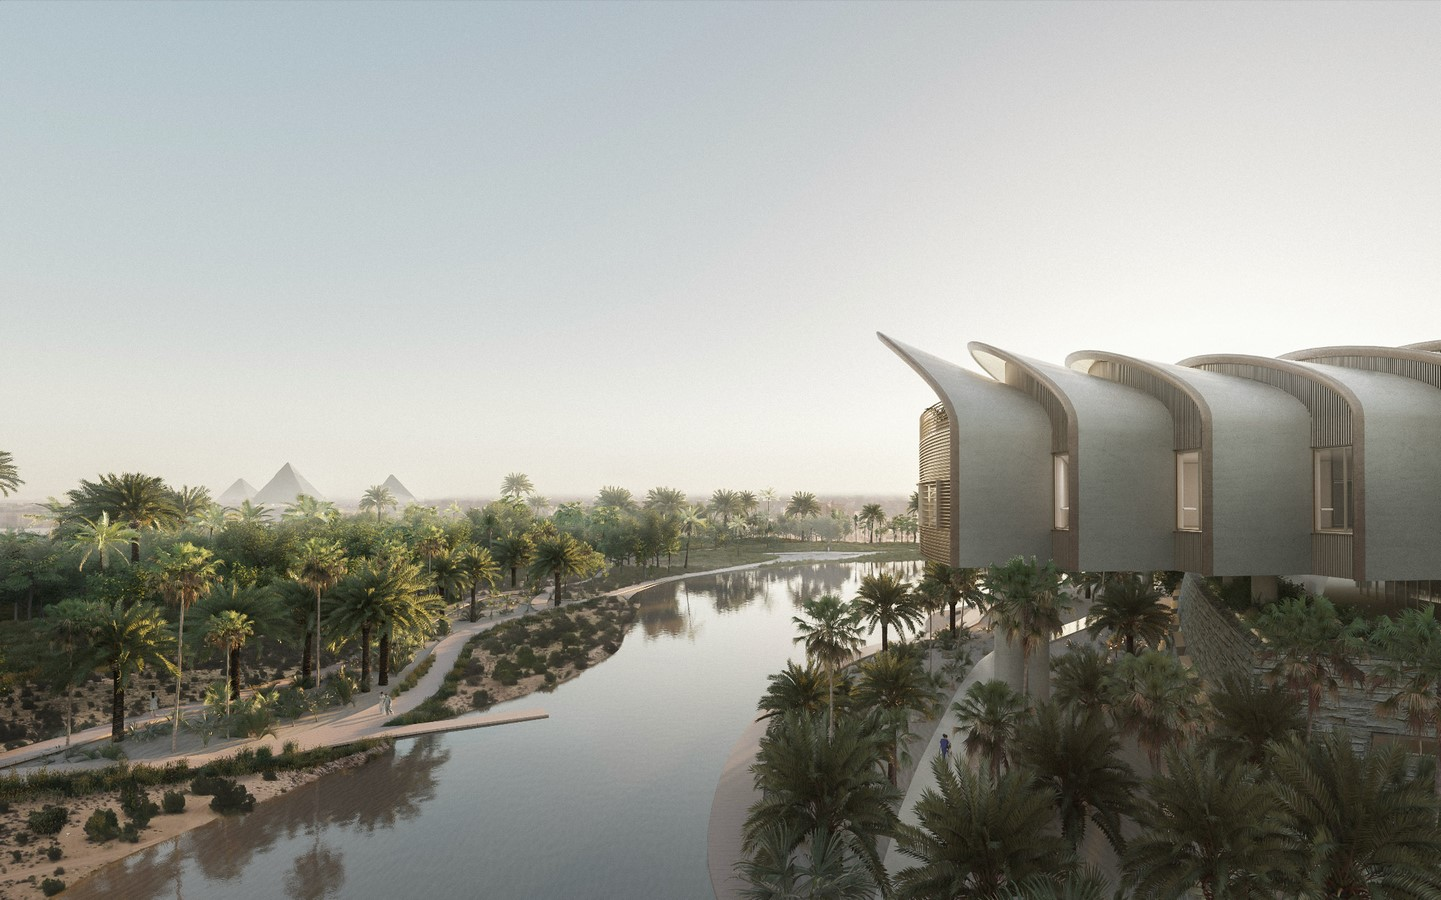 Construction begins on Cairo's New Global Heart Hospital designed by Foster + Partners - Sheet3